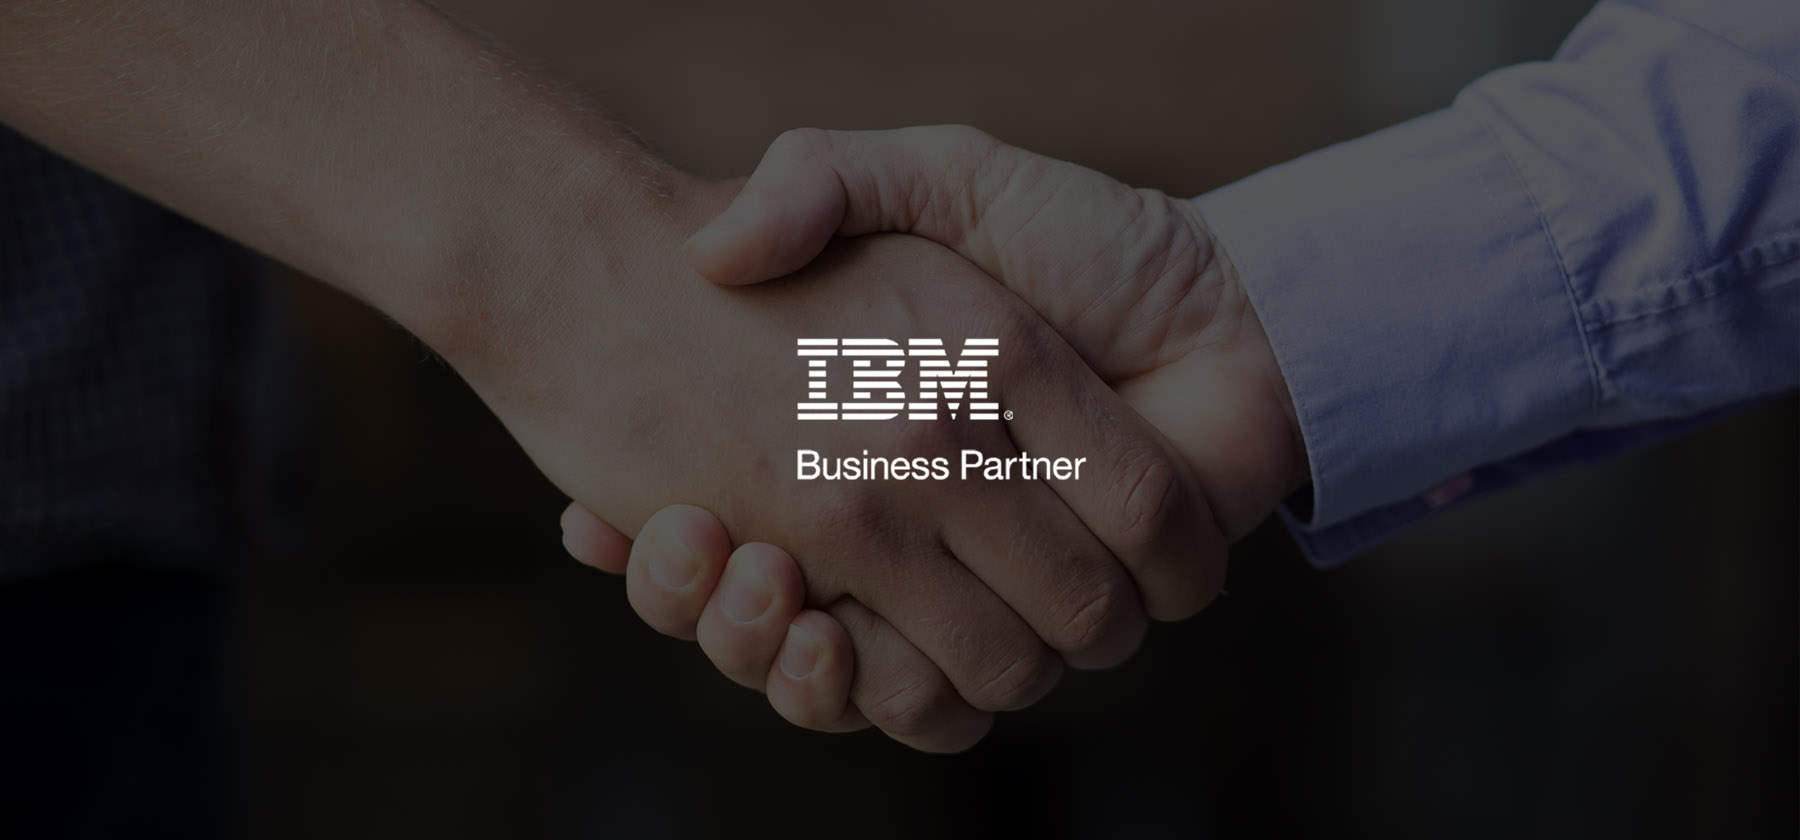 Profile es business partner de IBM